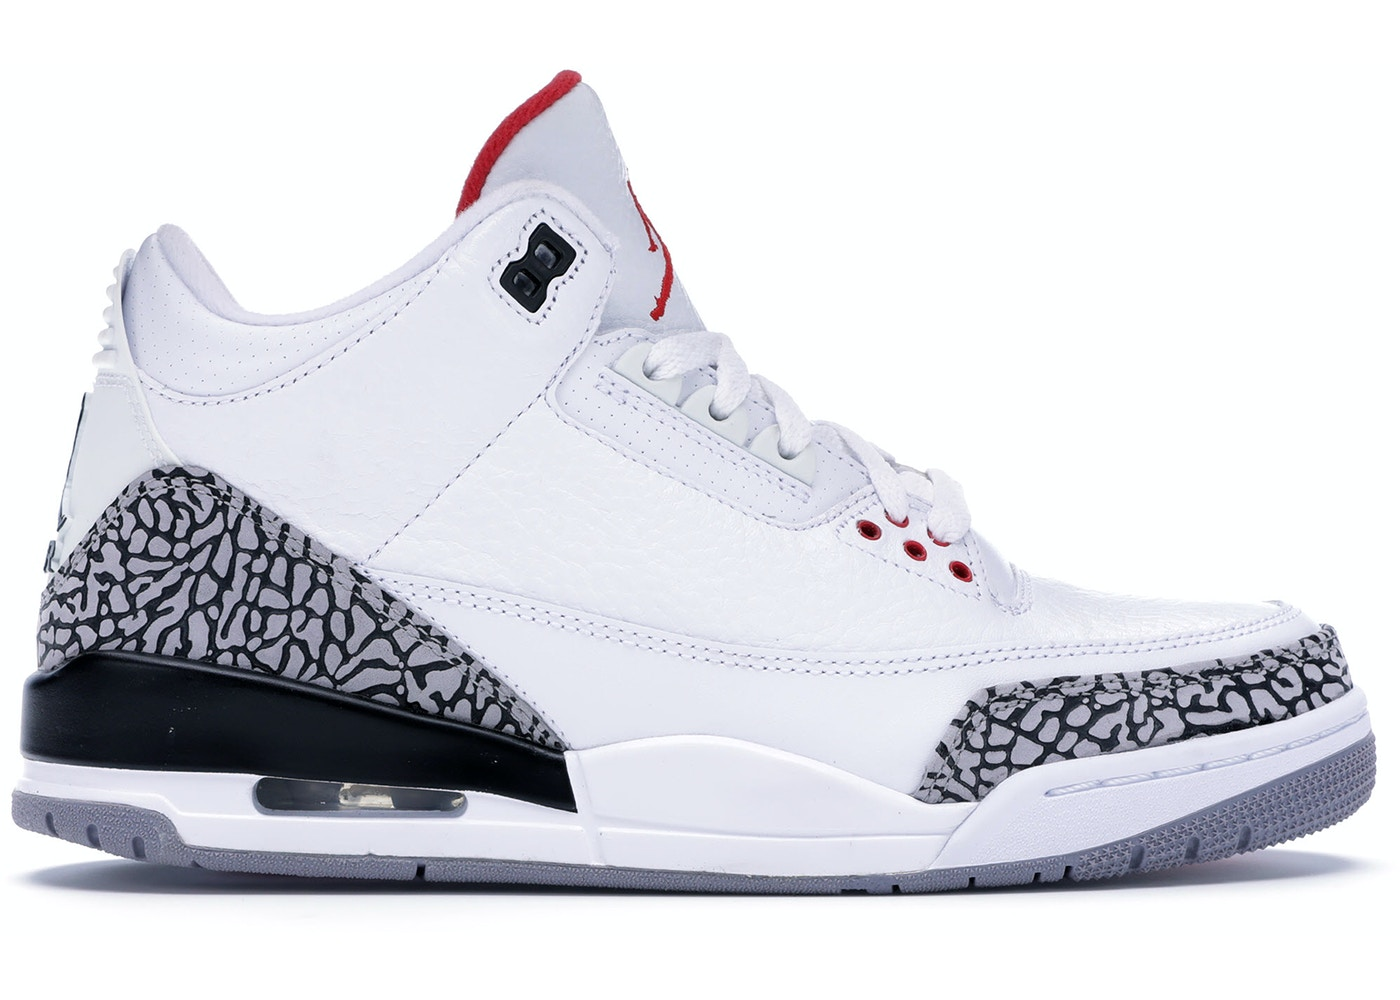 adf780ea27f Buy Air Jordan 3 Shoes   Deadstock Sneakers